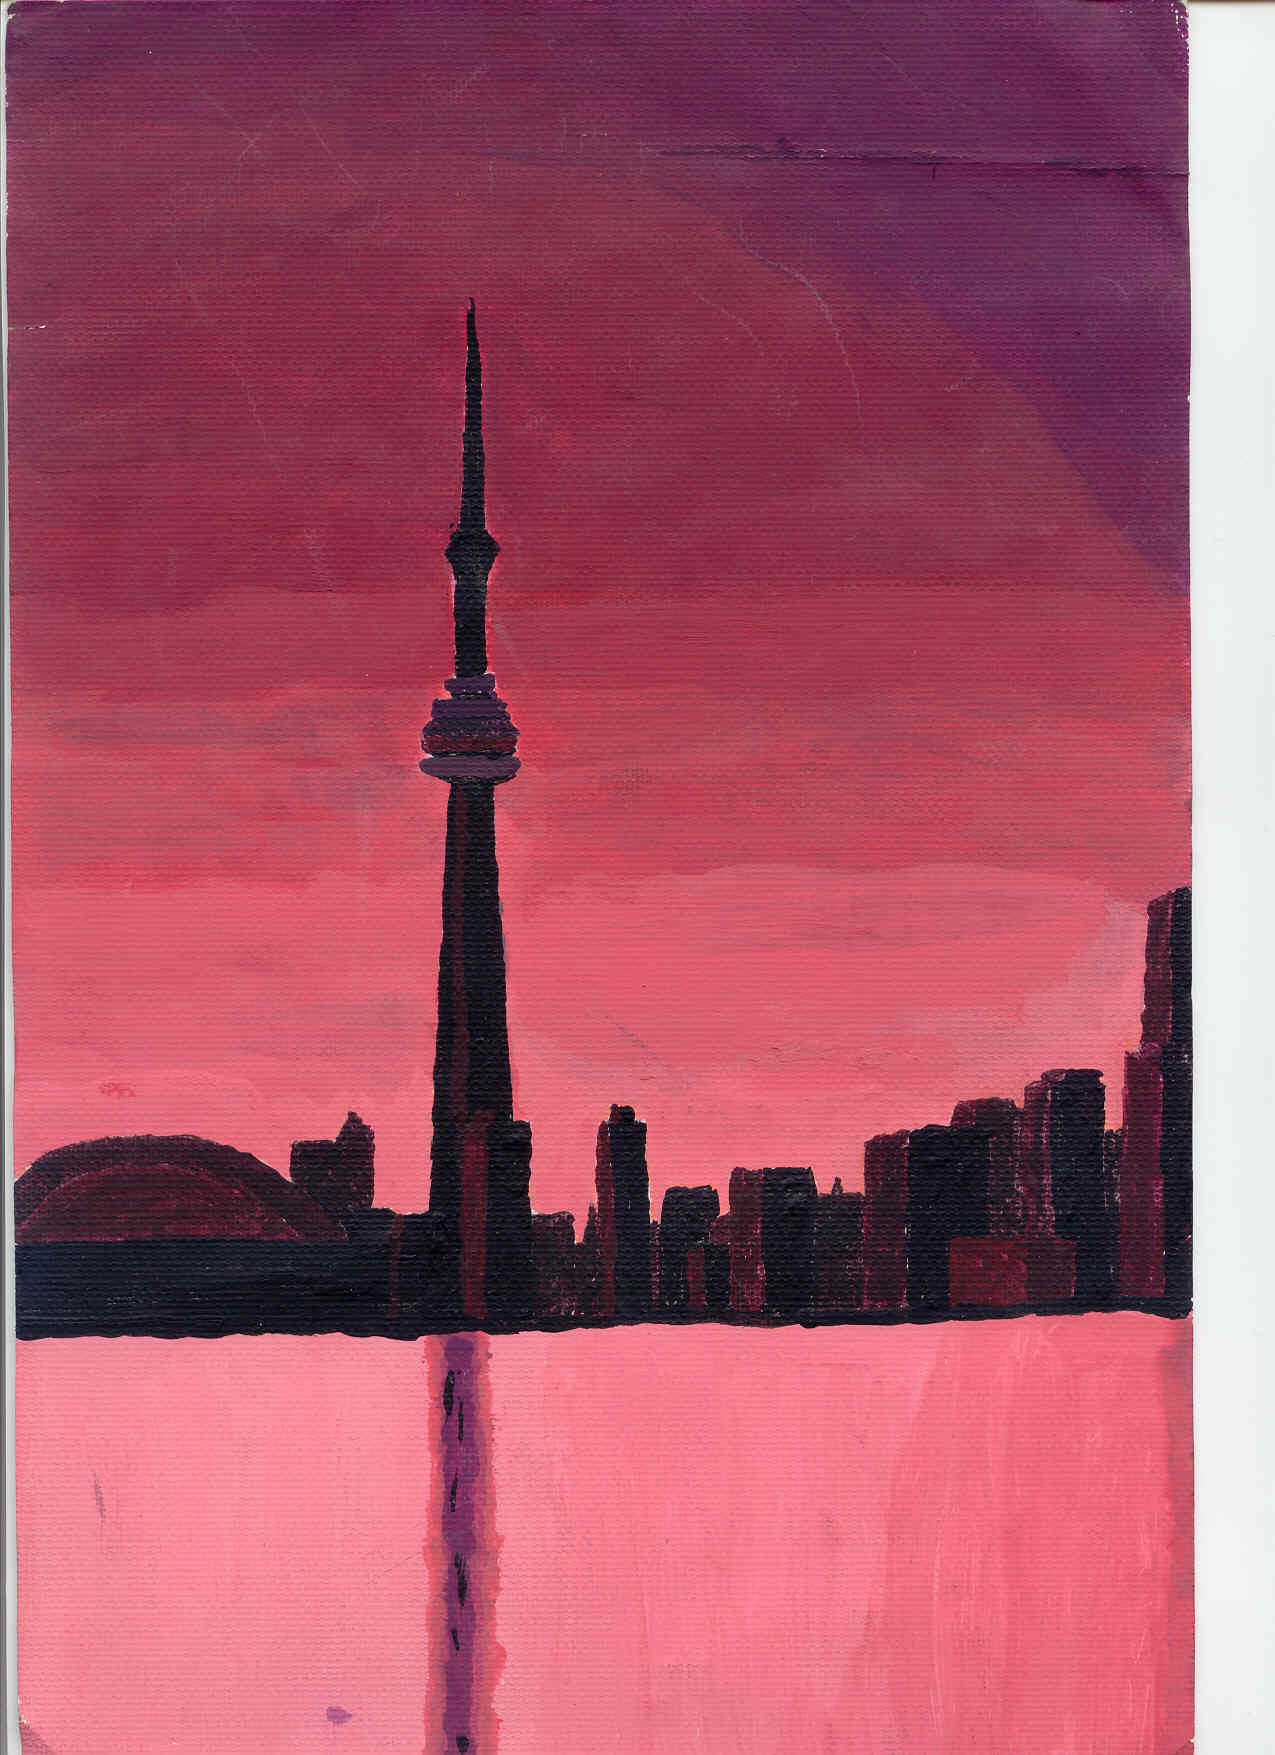 The T-Dot